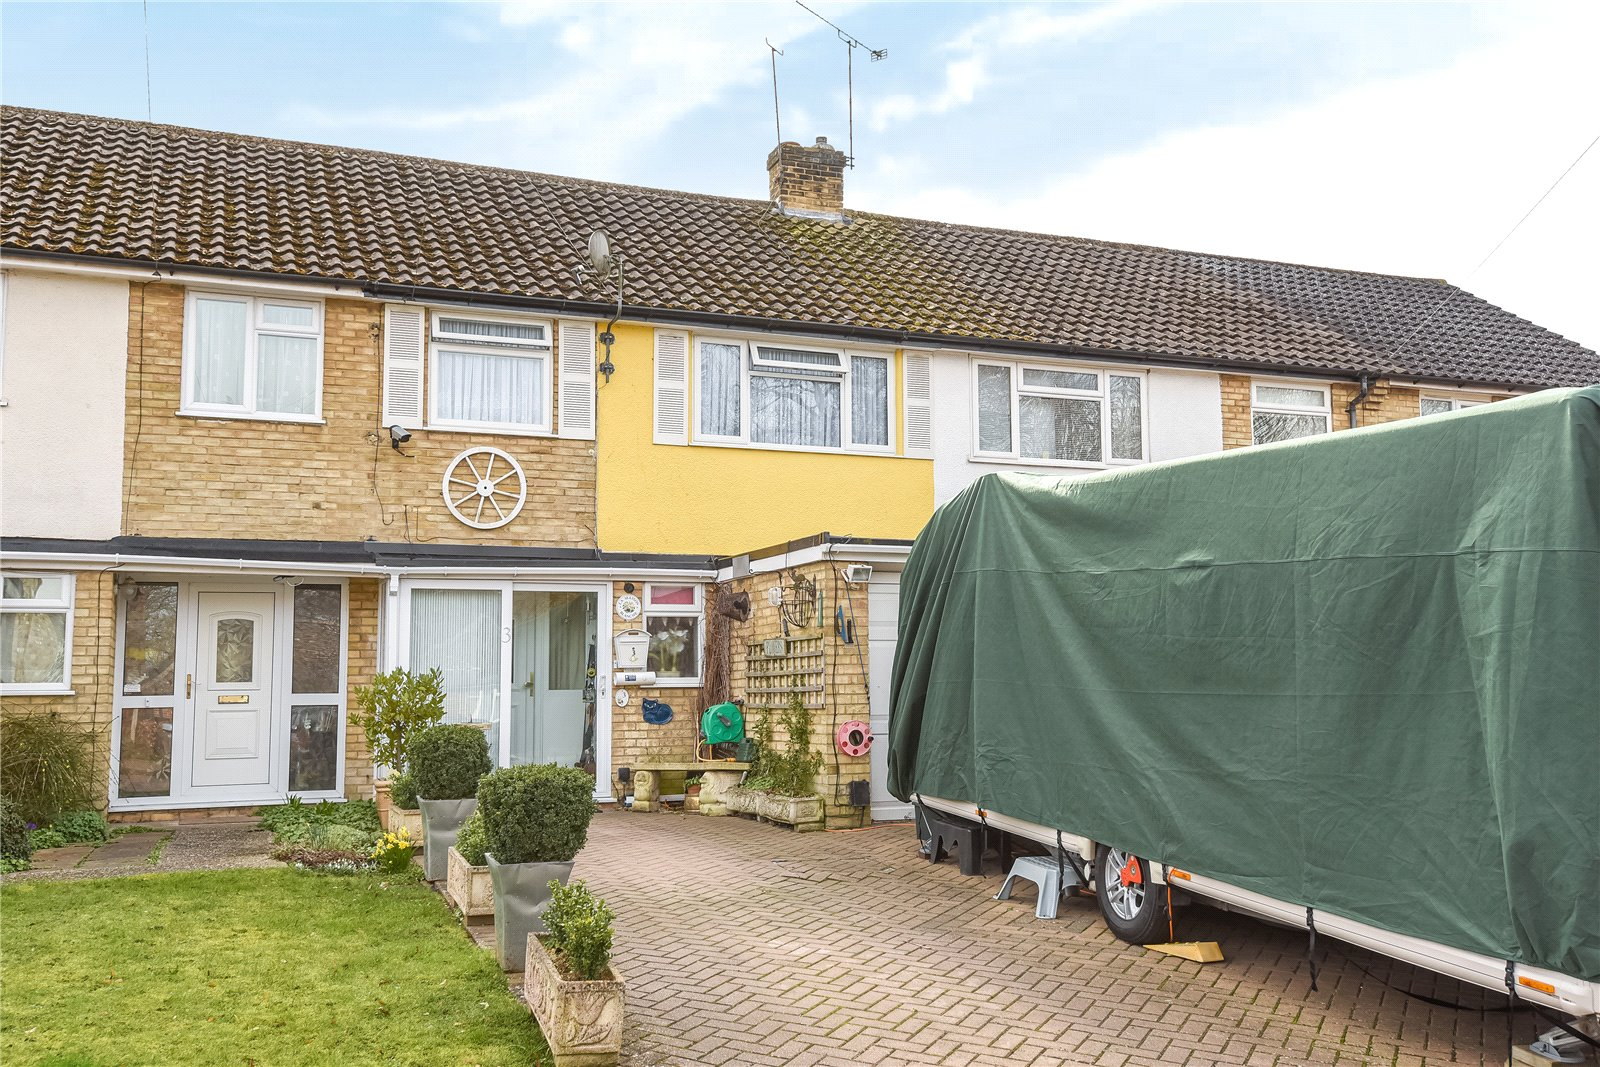 3 Bedrooms Terraced House for sale in Wentworth Close, Yateley, Hampshire, GU46